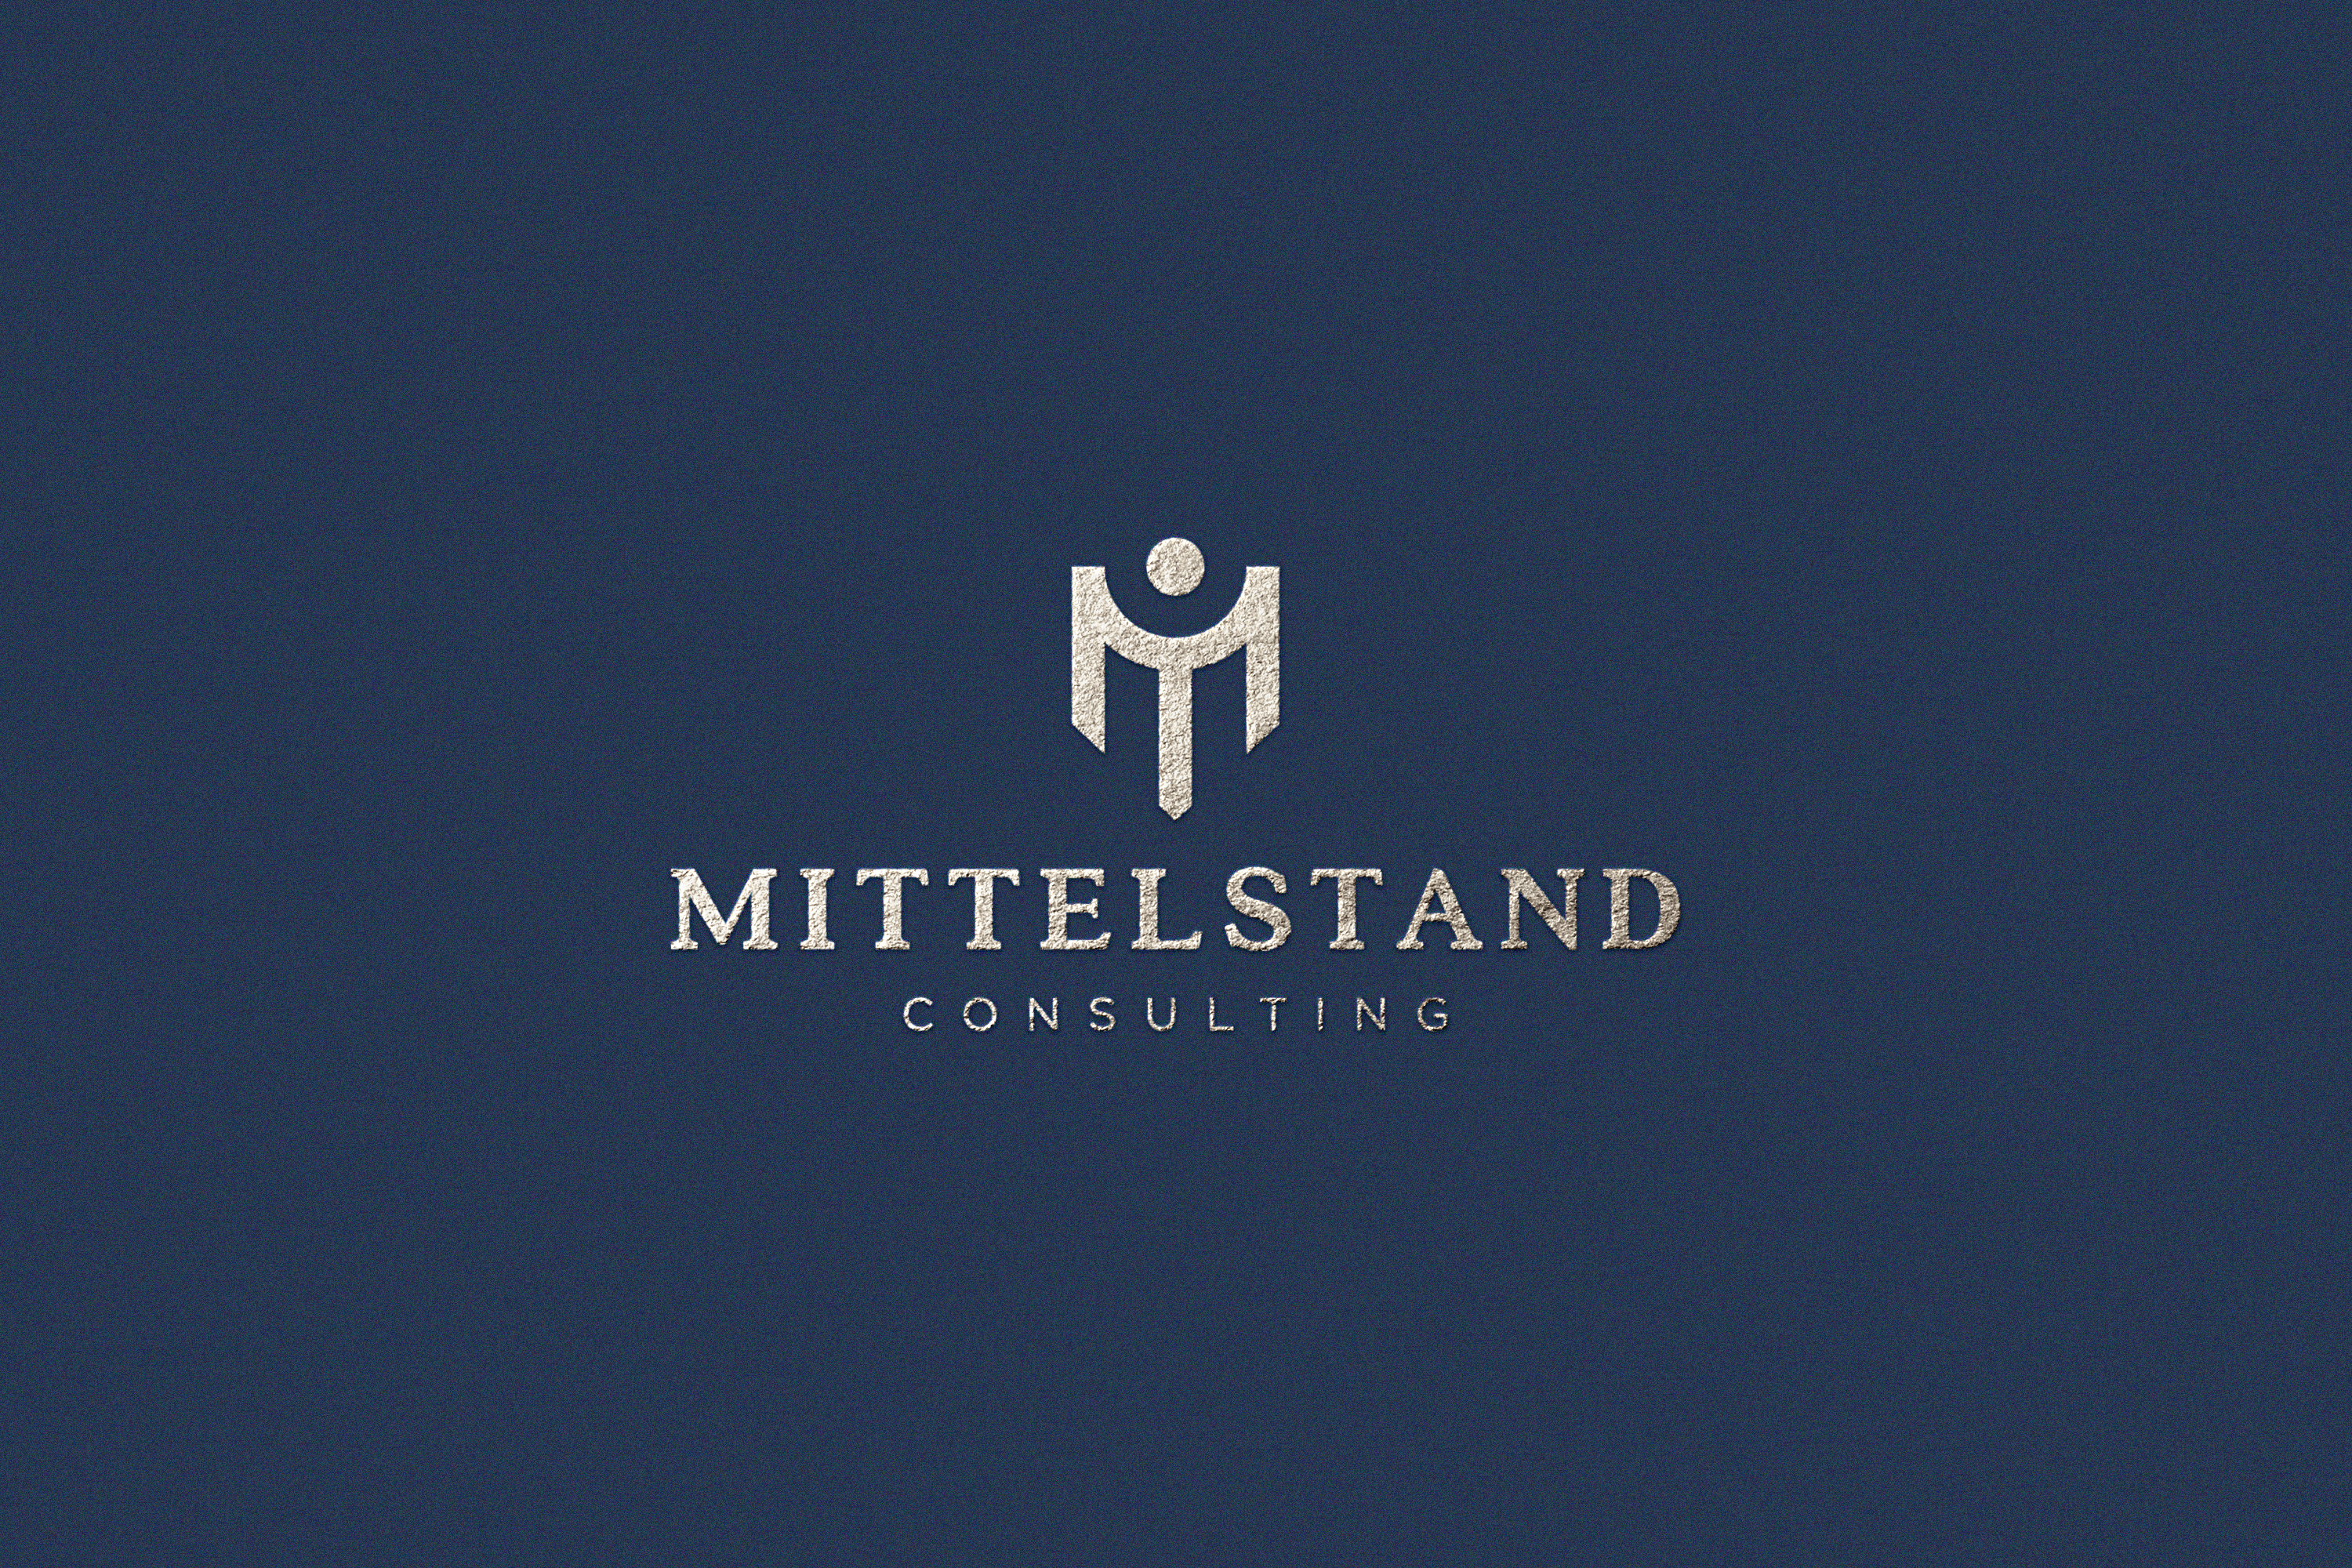 Mittelstand Consulting 3